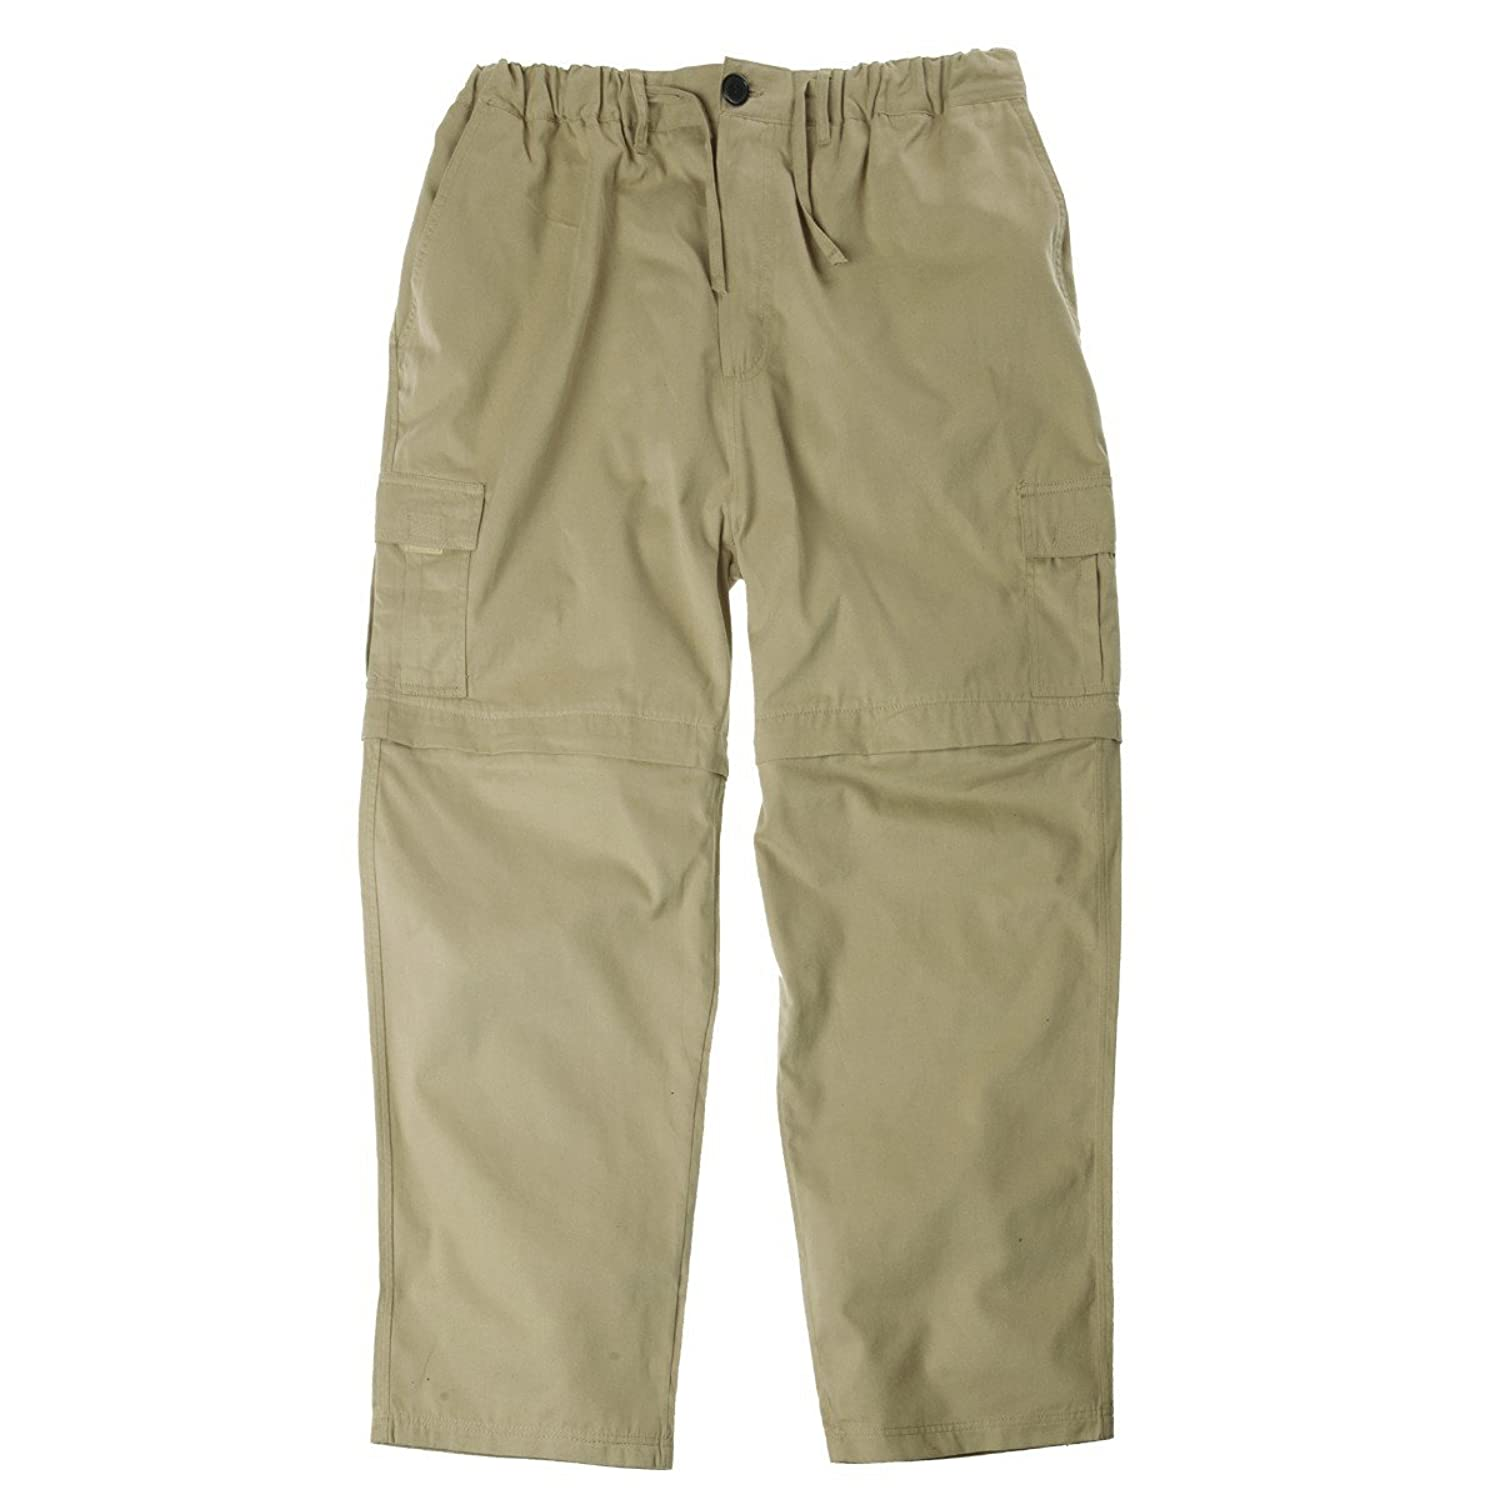 XXL zip-off cargo pants with elastic waistband sand